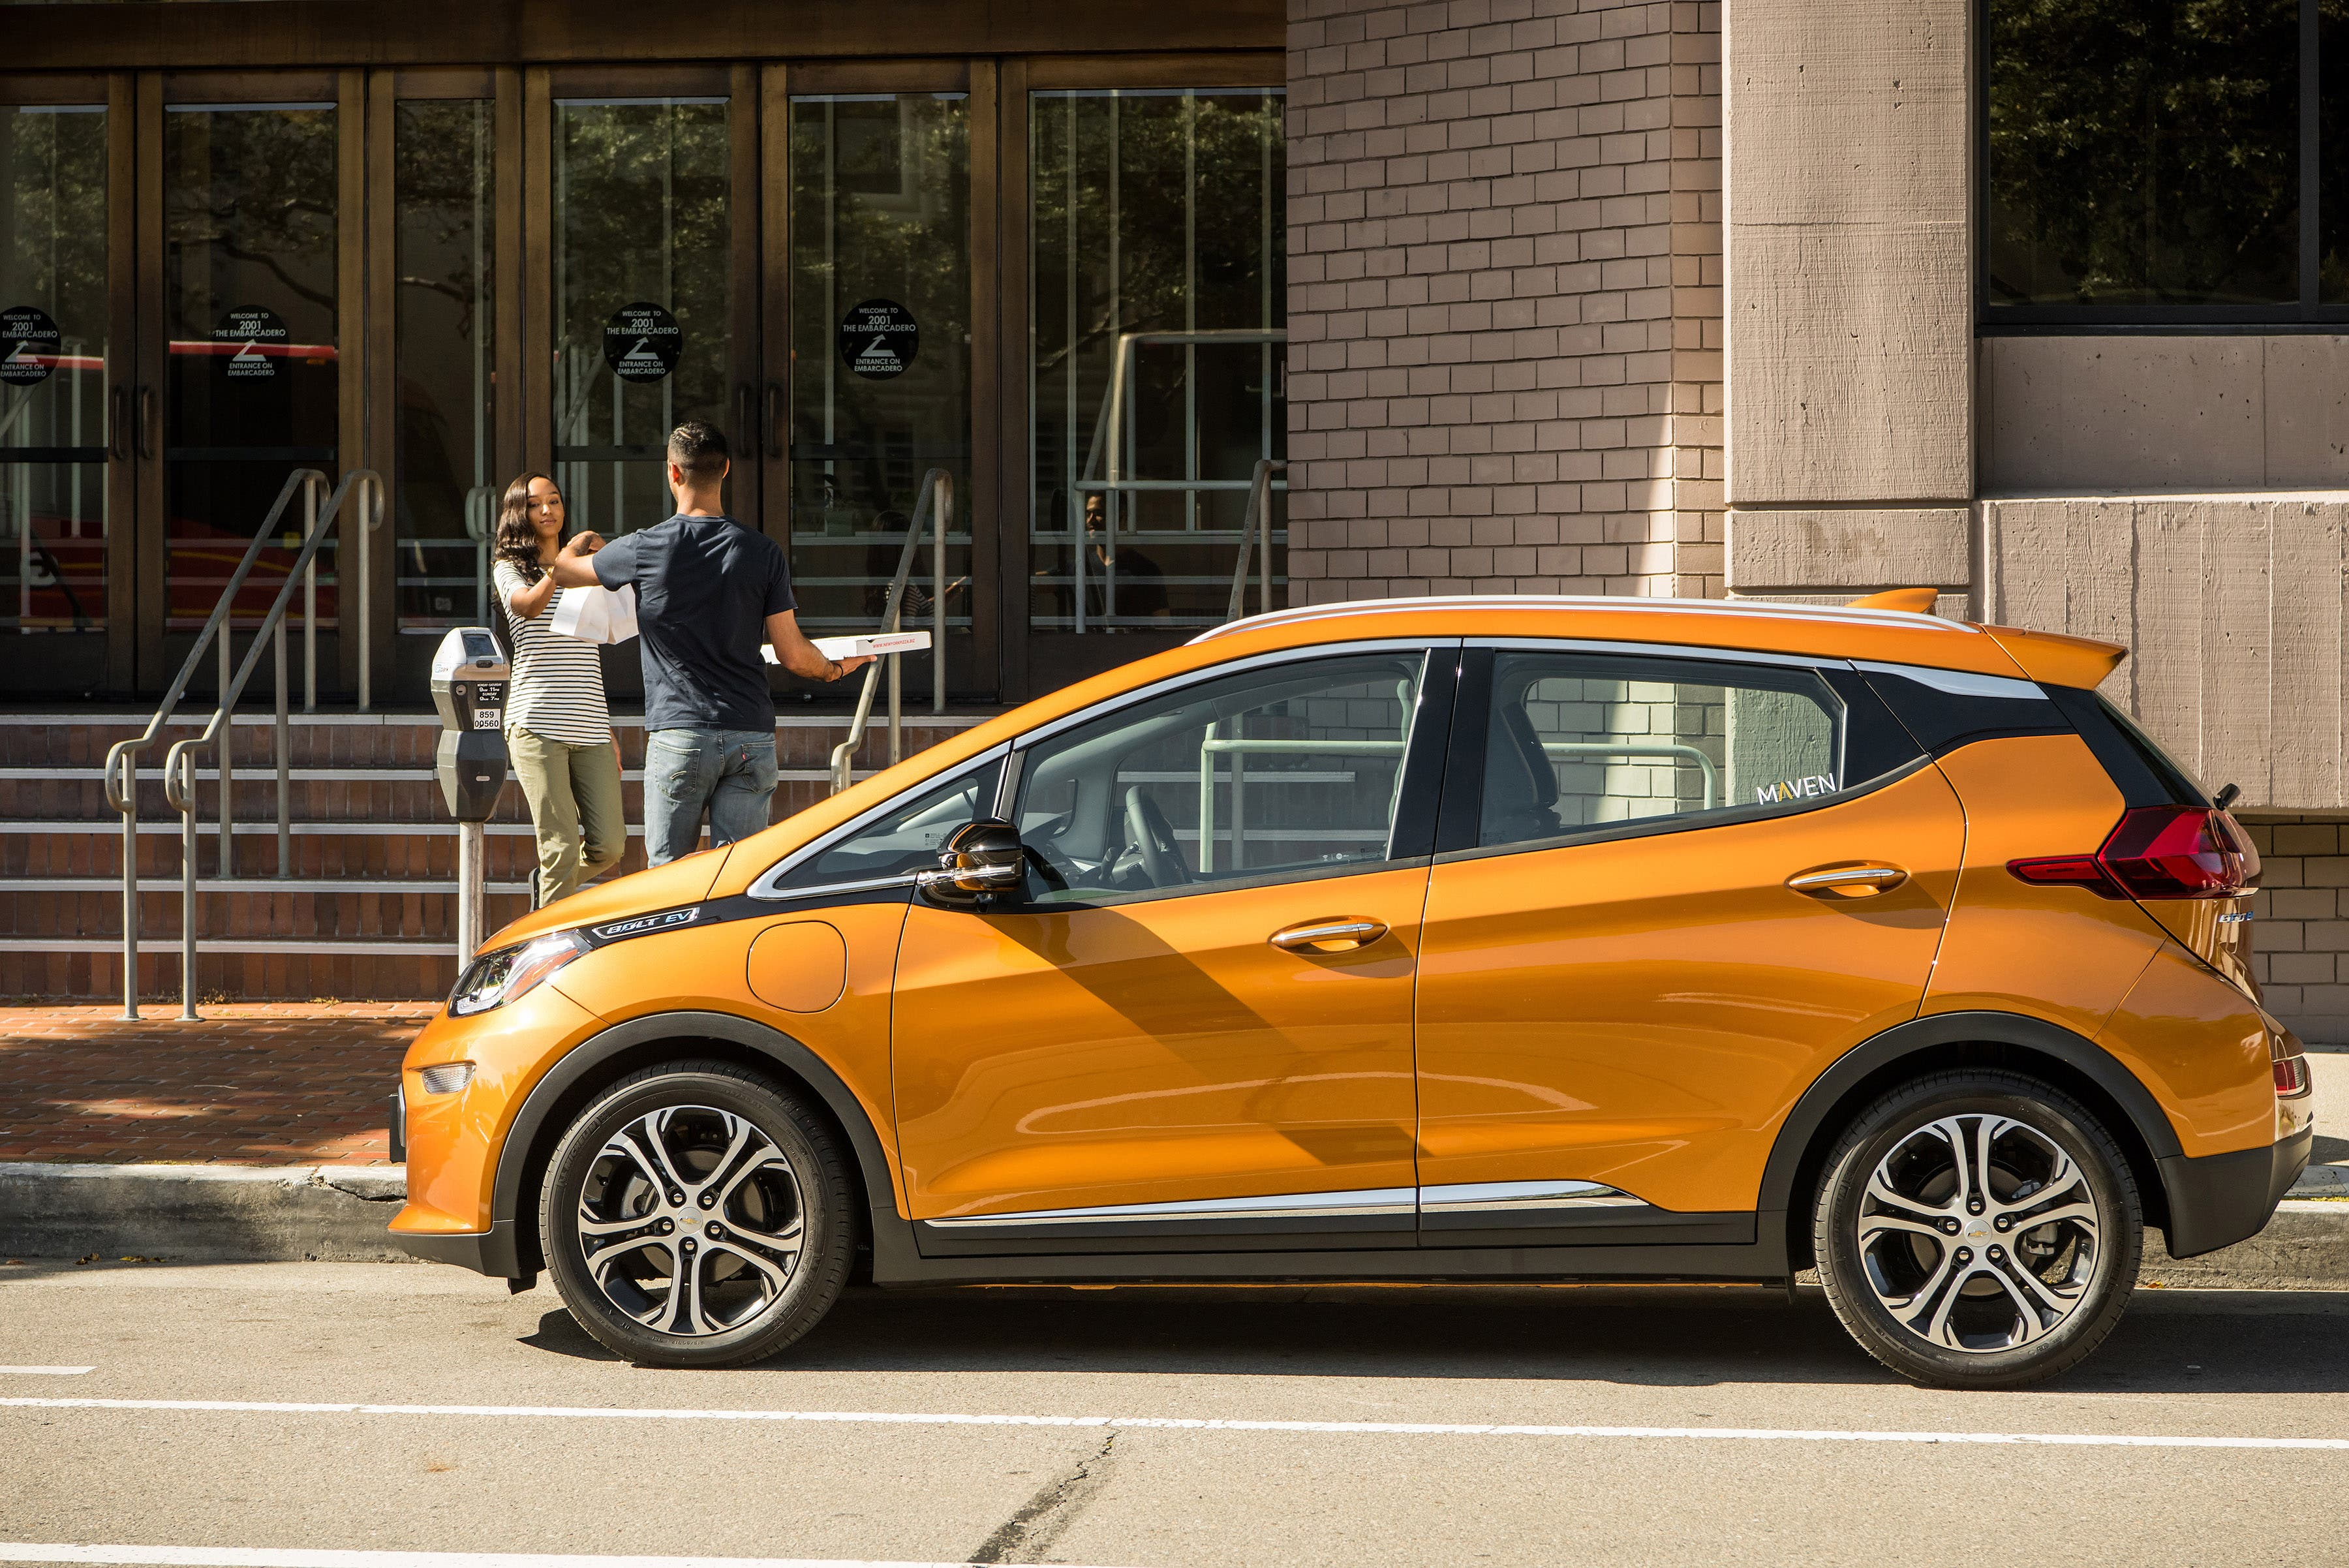 2017 chevrolet bolt ev now available nationwide us according to gm cleantechnica. Black Bedroom Furniture Sets. Home Design Ideas